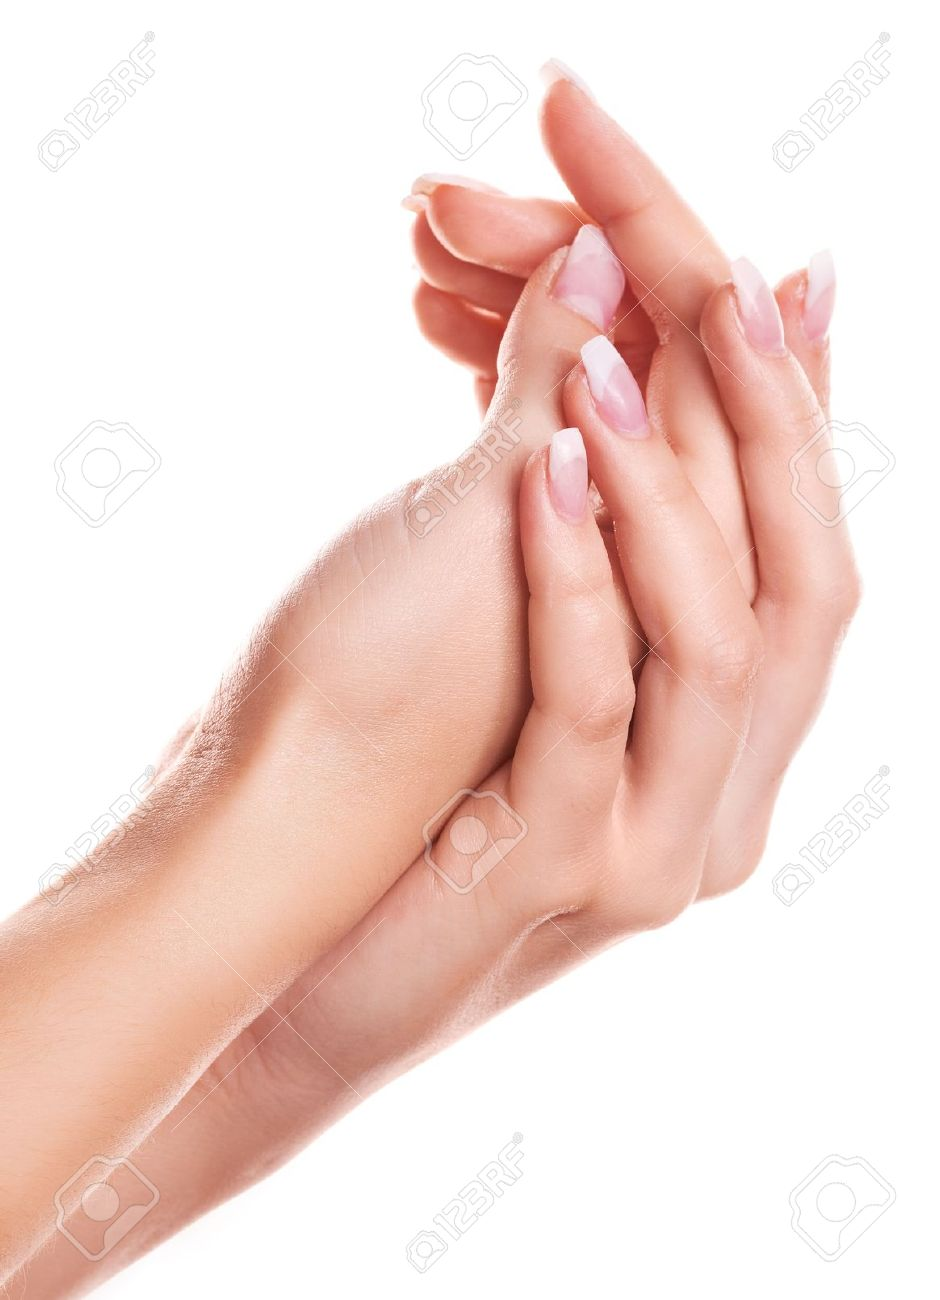 hands of a woman applying body lotion, isolated against white background Stock Photo - 11803338